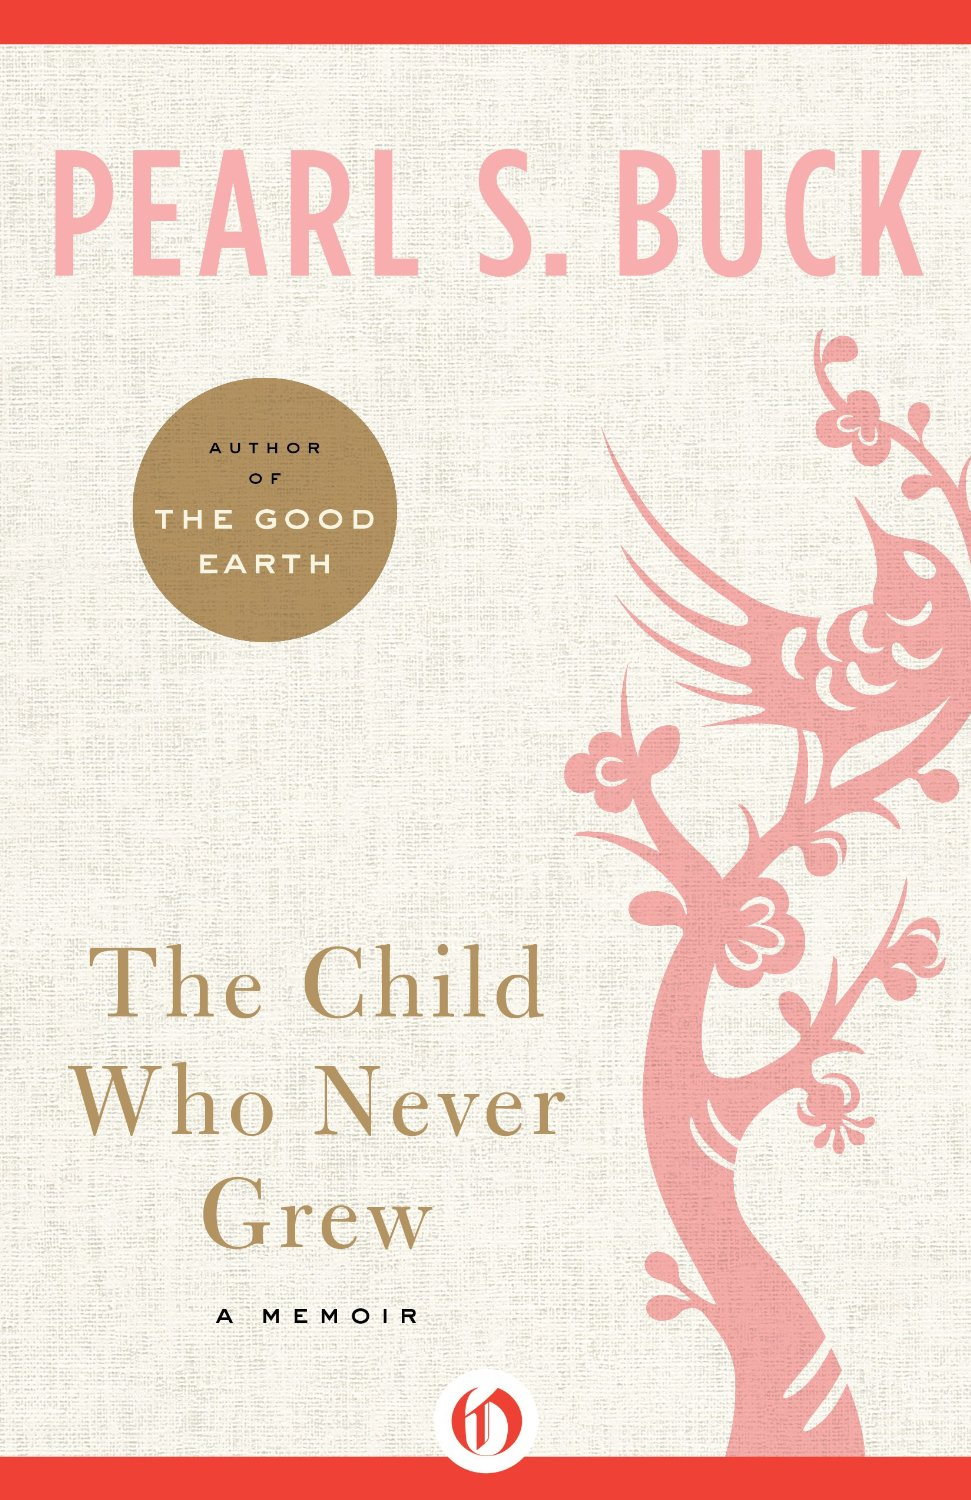 The Child Who Never Grew